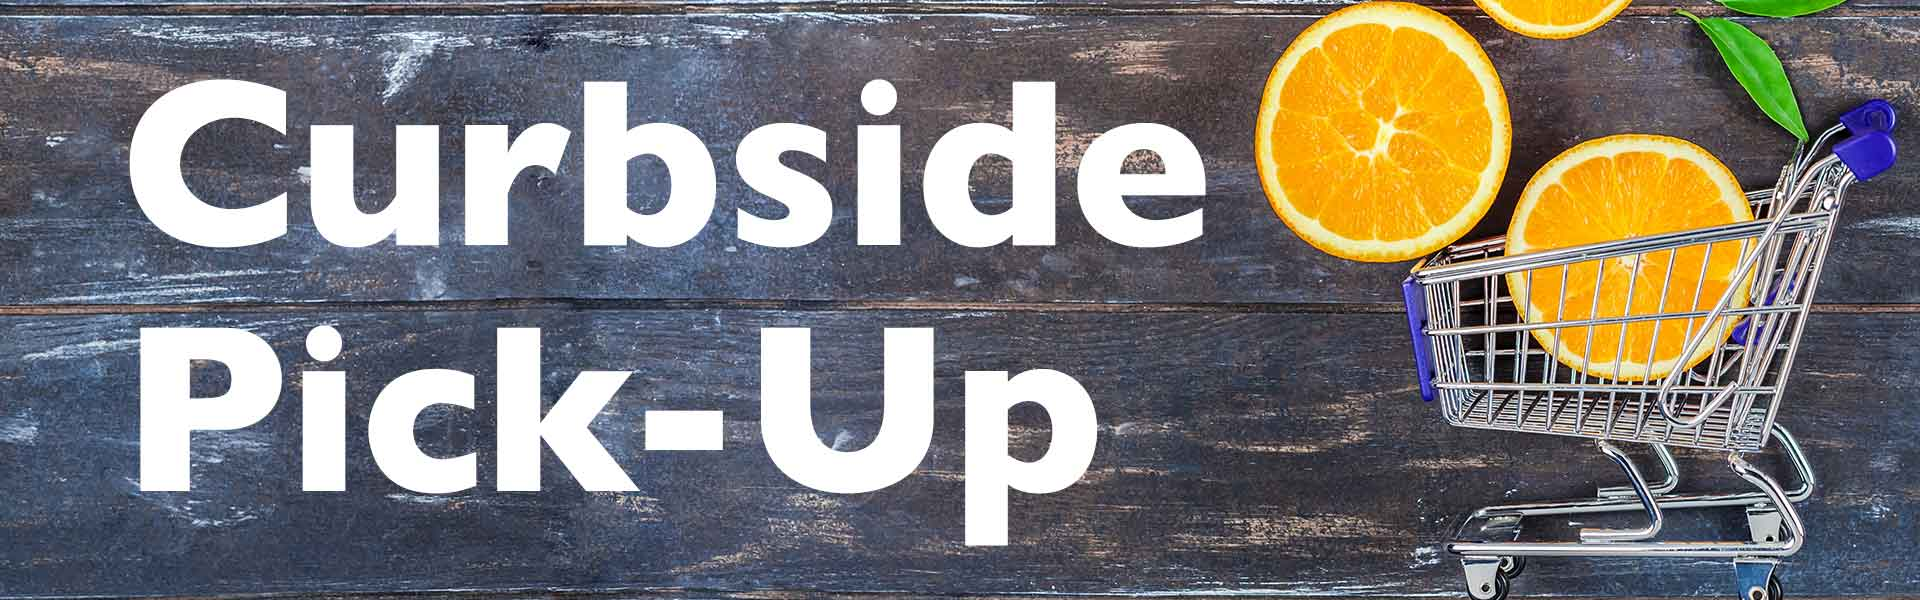 Curbside Pick-Up program header